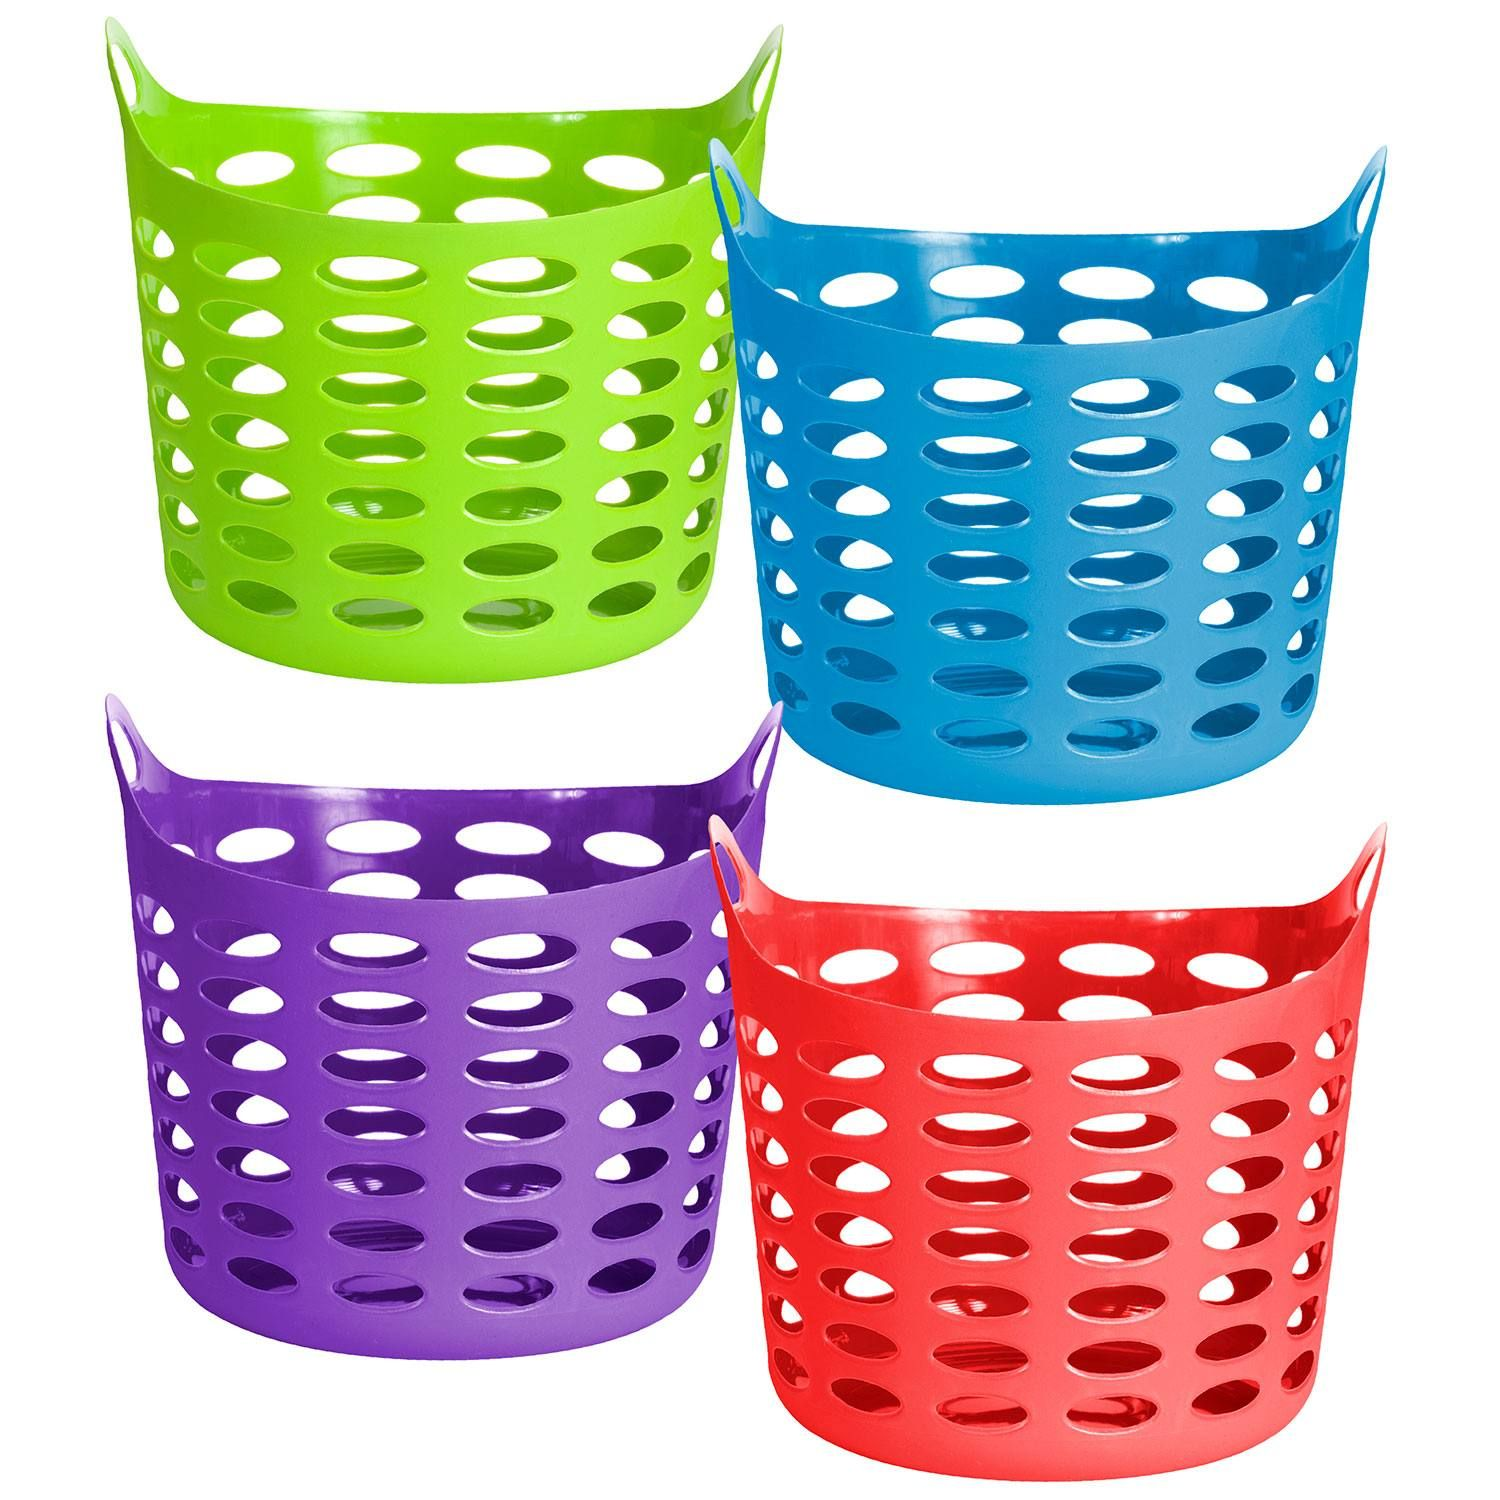 Option For Colorful Baskets For Ring The Basket Activity Station